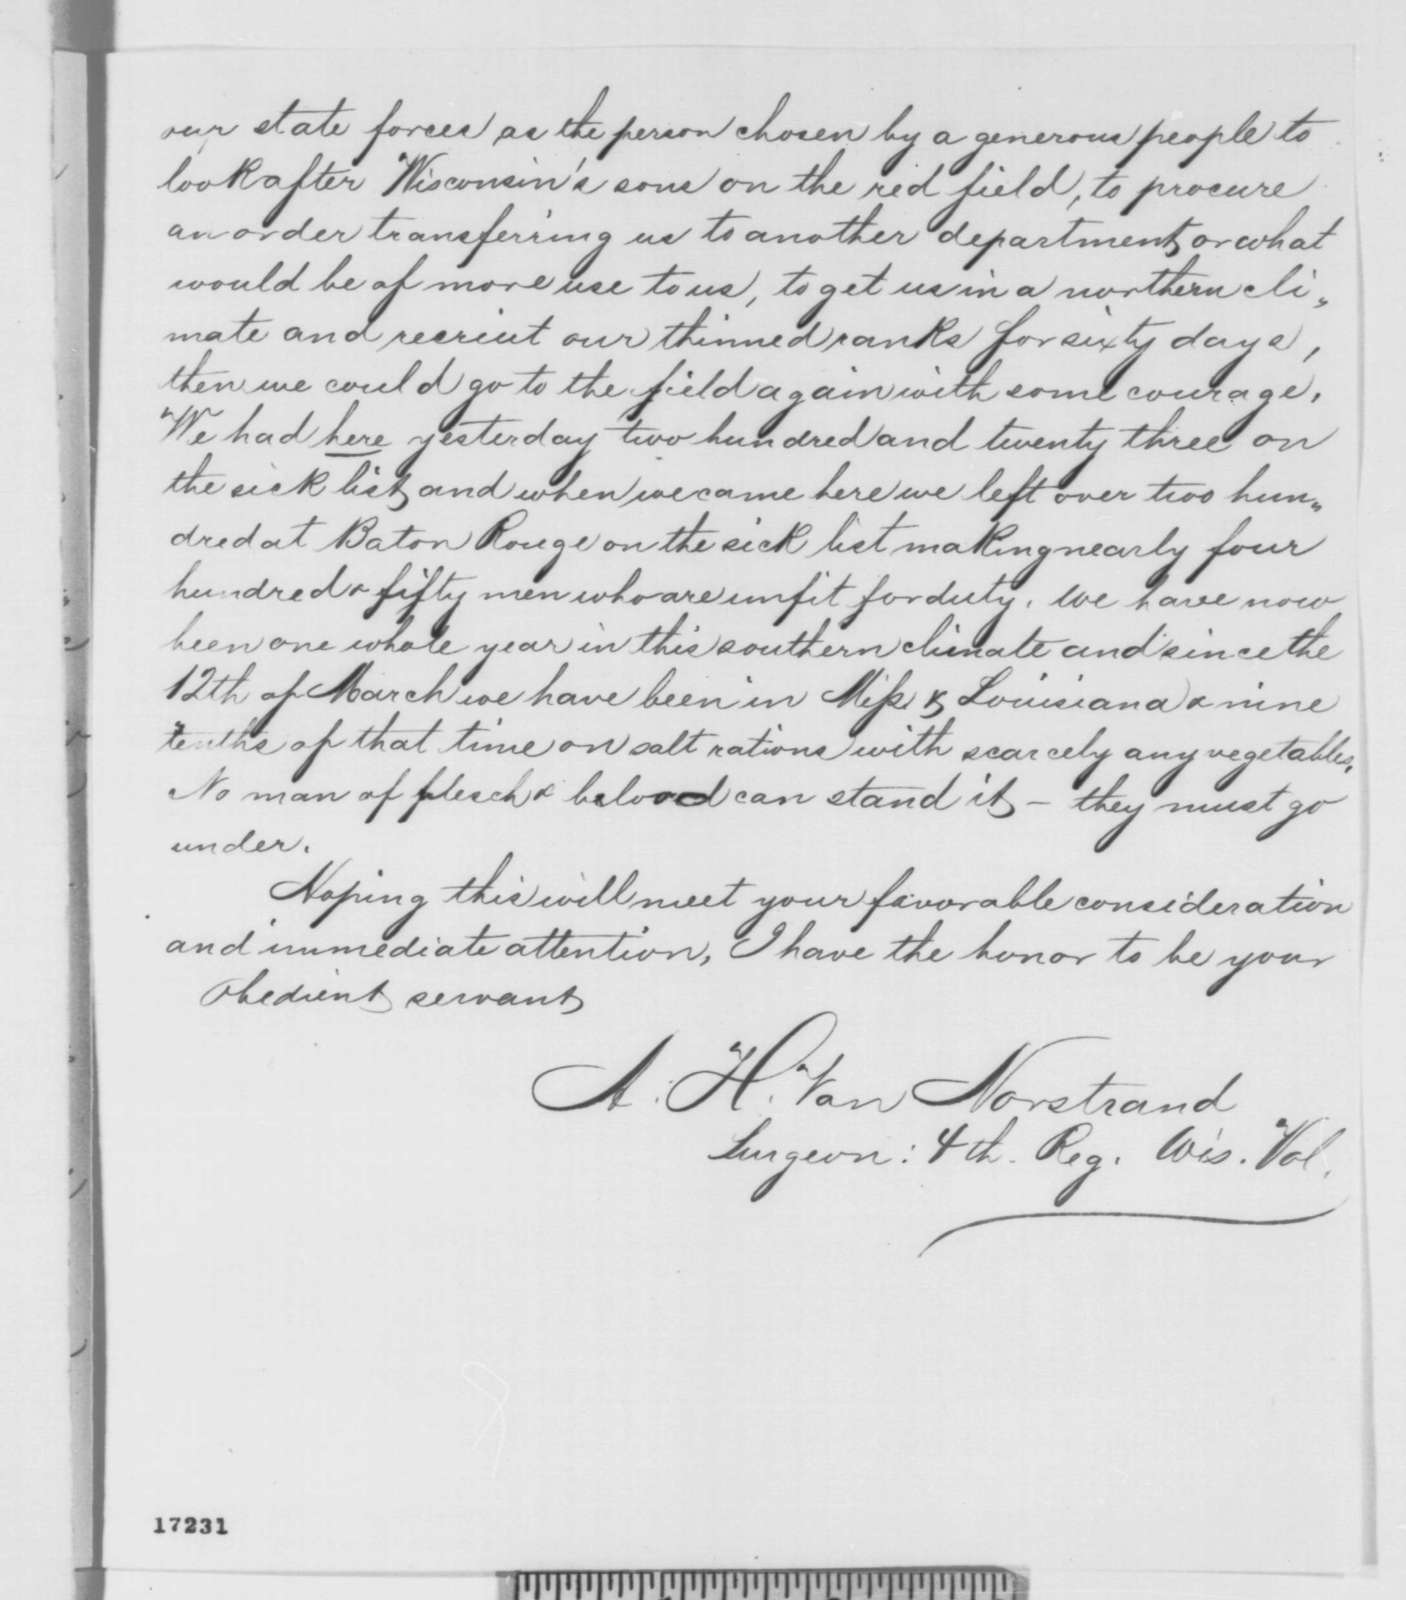 A. H. Van Norstrand to Edward Salomon, Monday, July 21, 1862  (Condition of Wisconsin soldiers near Vicksburg)